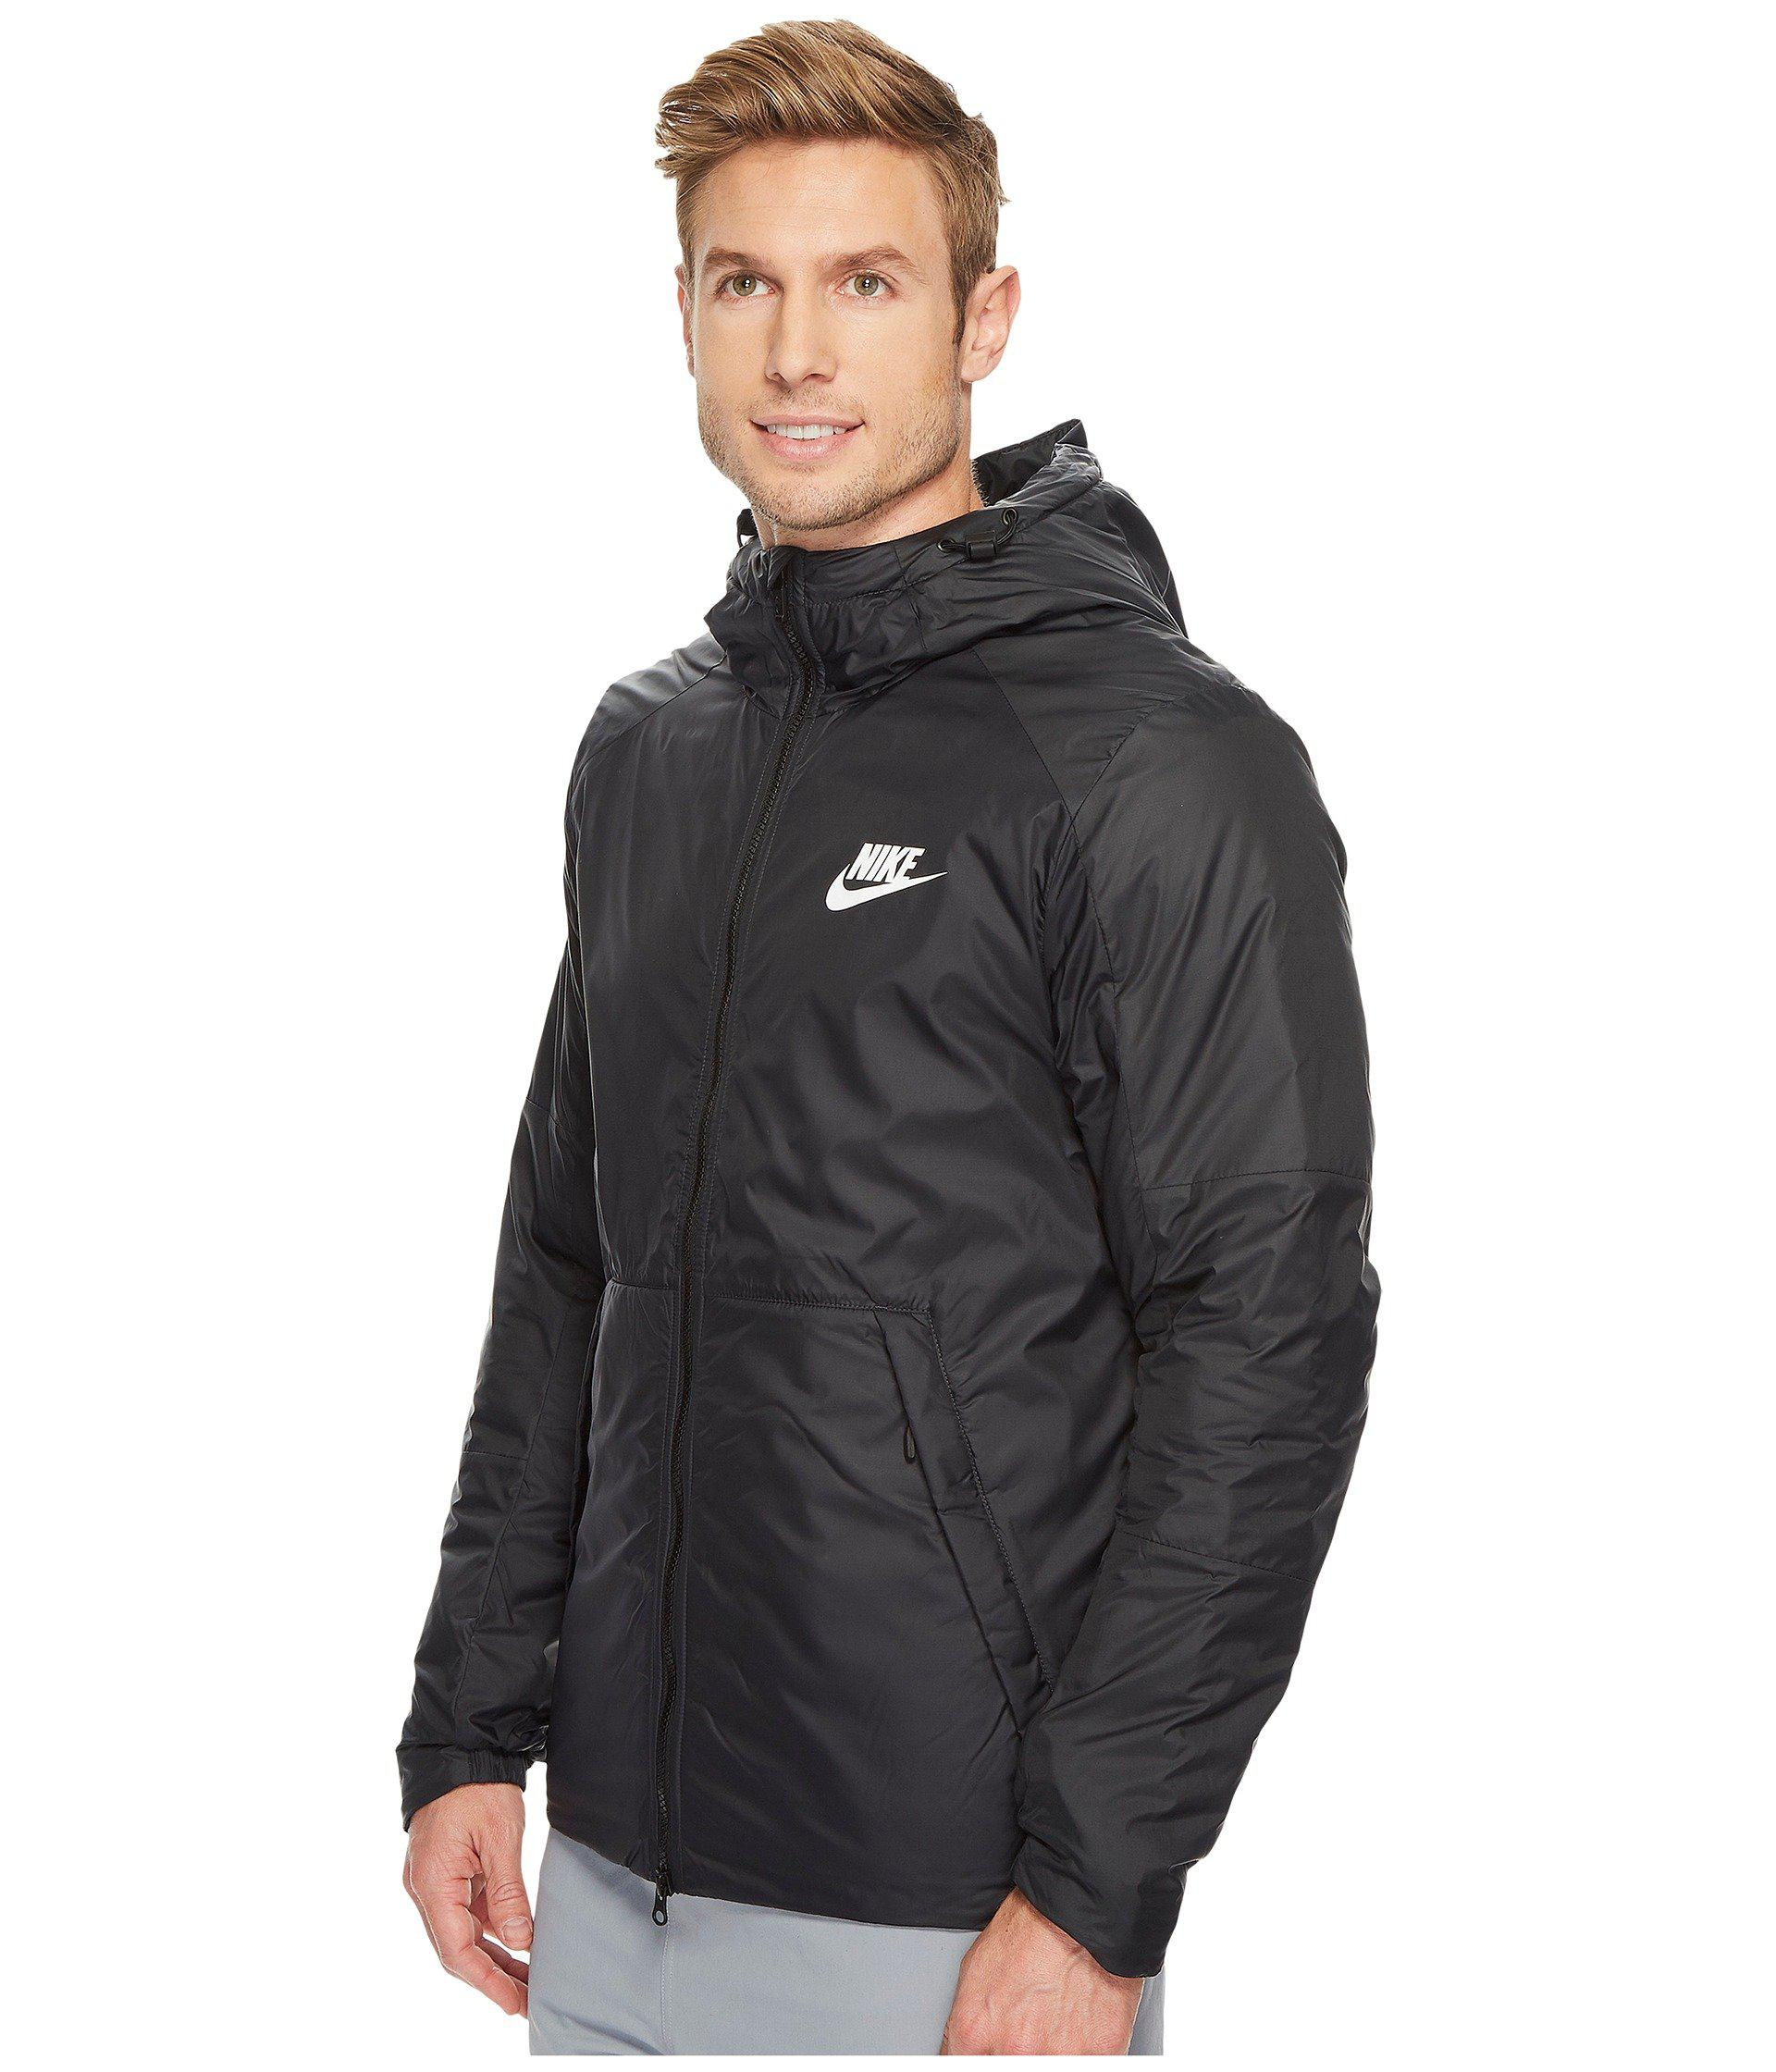 promo code 25567 82195 Nike Synthetic Fill Fleece Jacket in Black for Men - Lyst